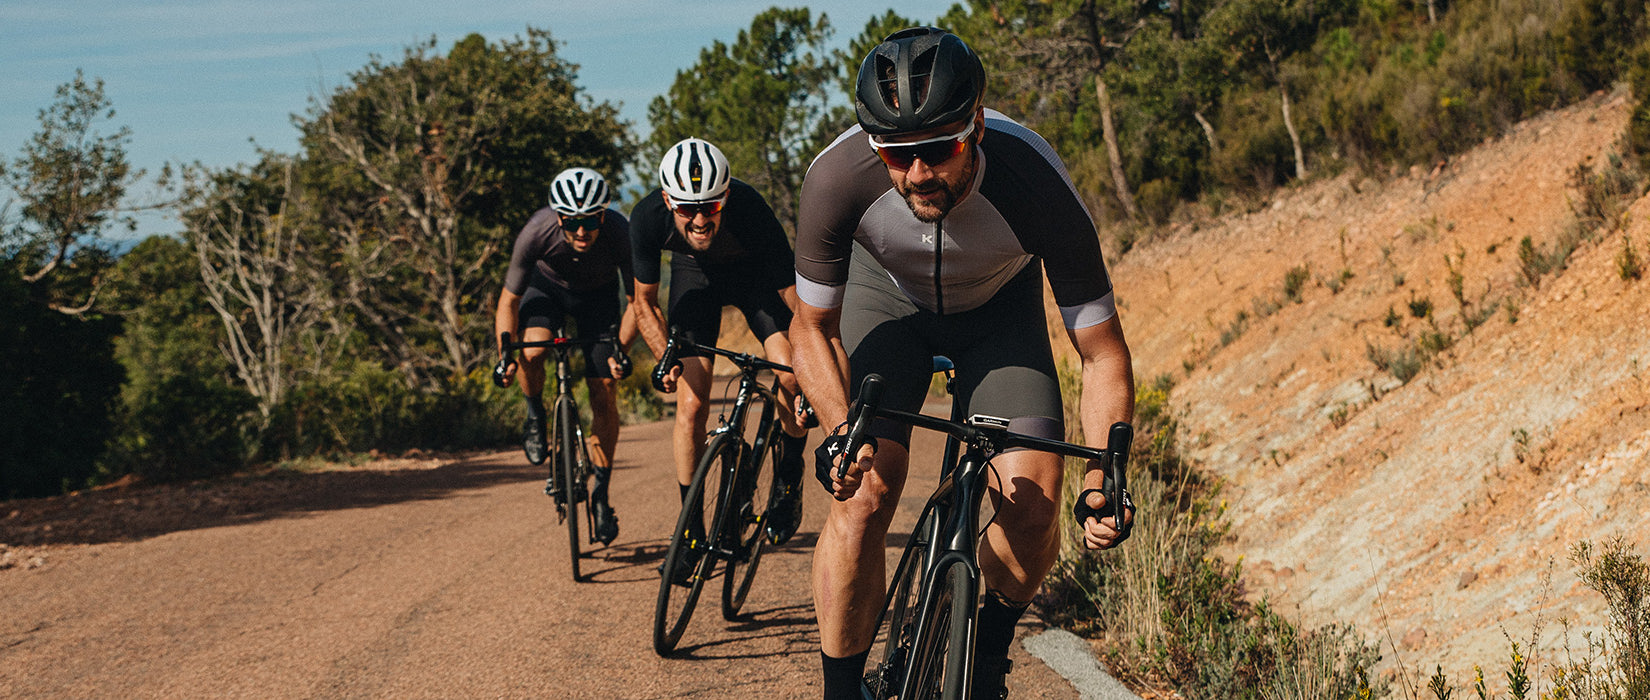 katusha cycling apparel - men performance - spring summer 2020 collection